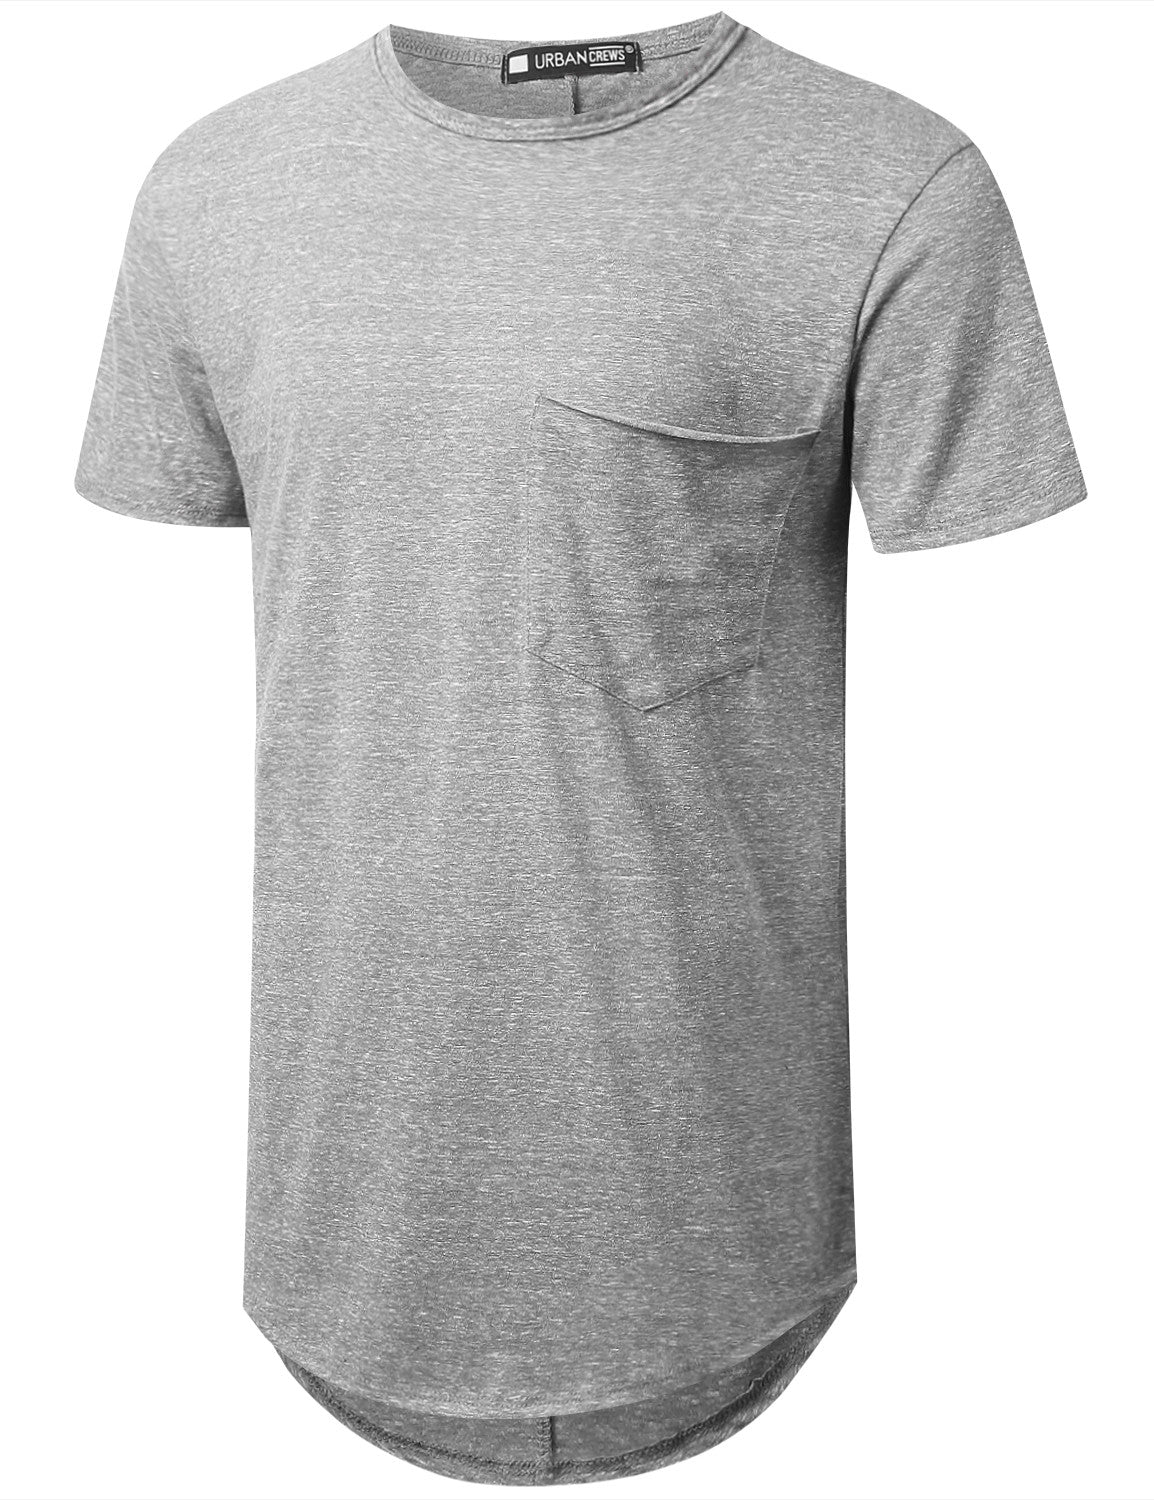 GRAY Melange Longline Pocket T-shirt - URBANCREWS